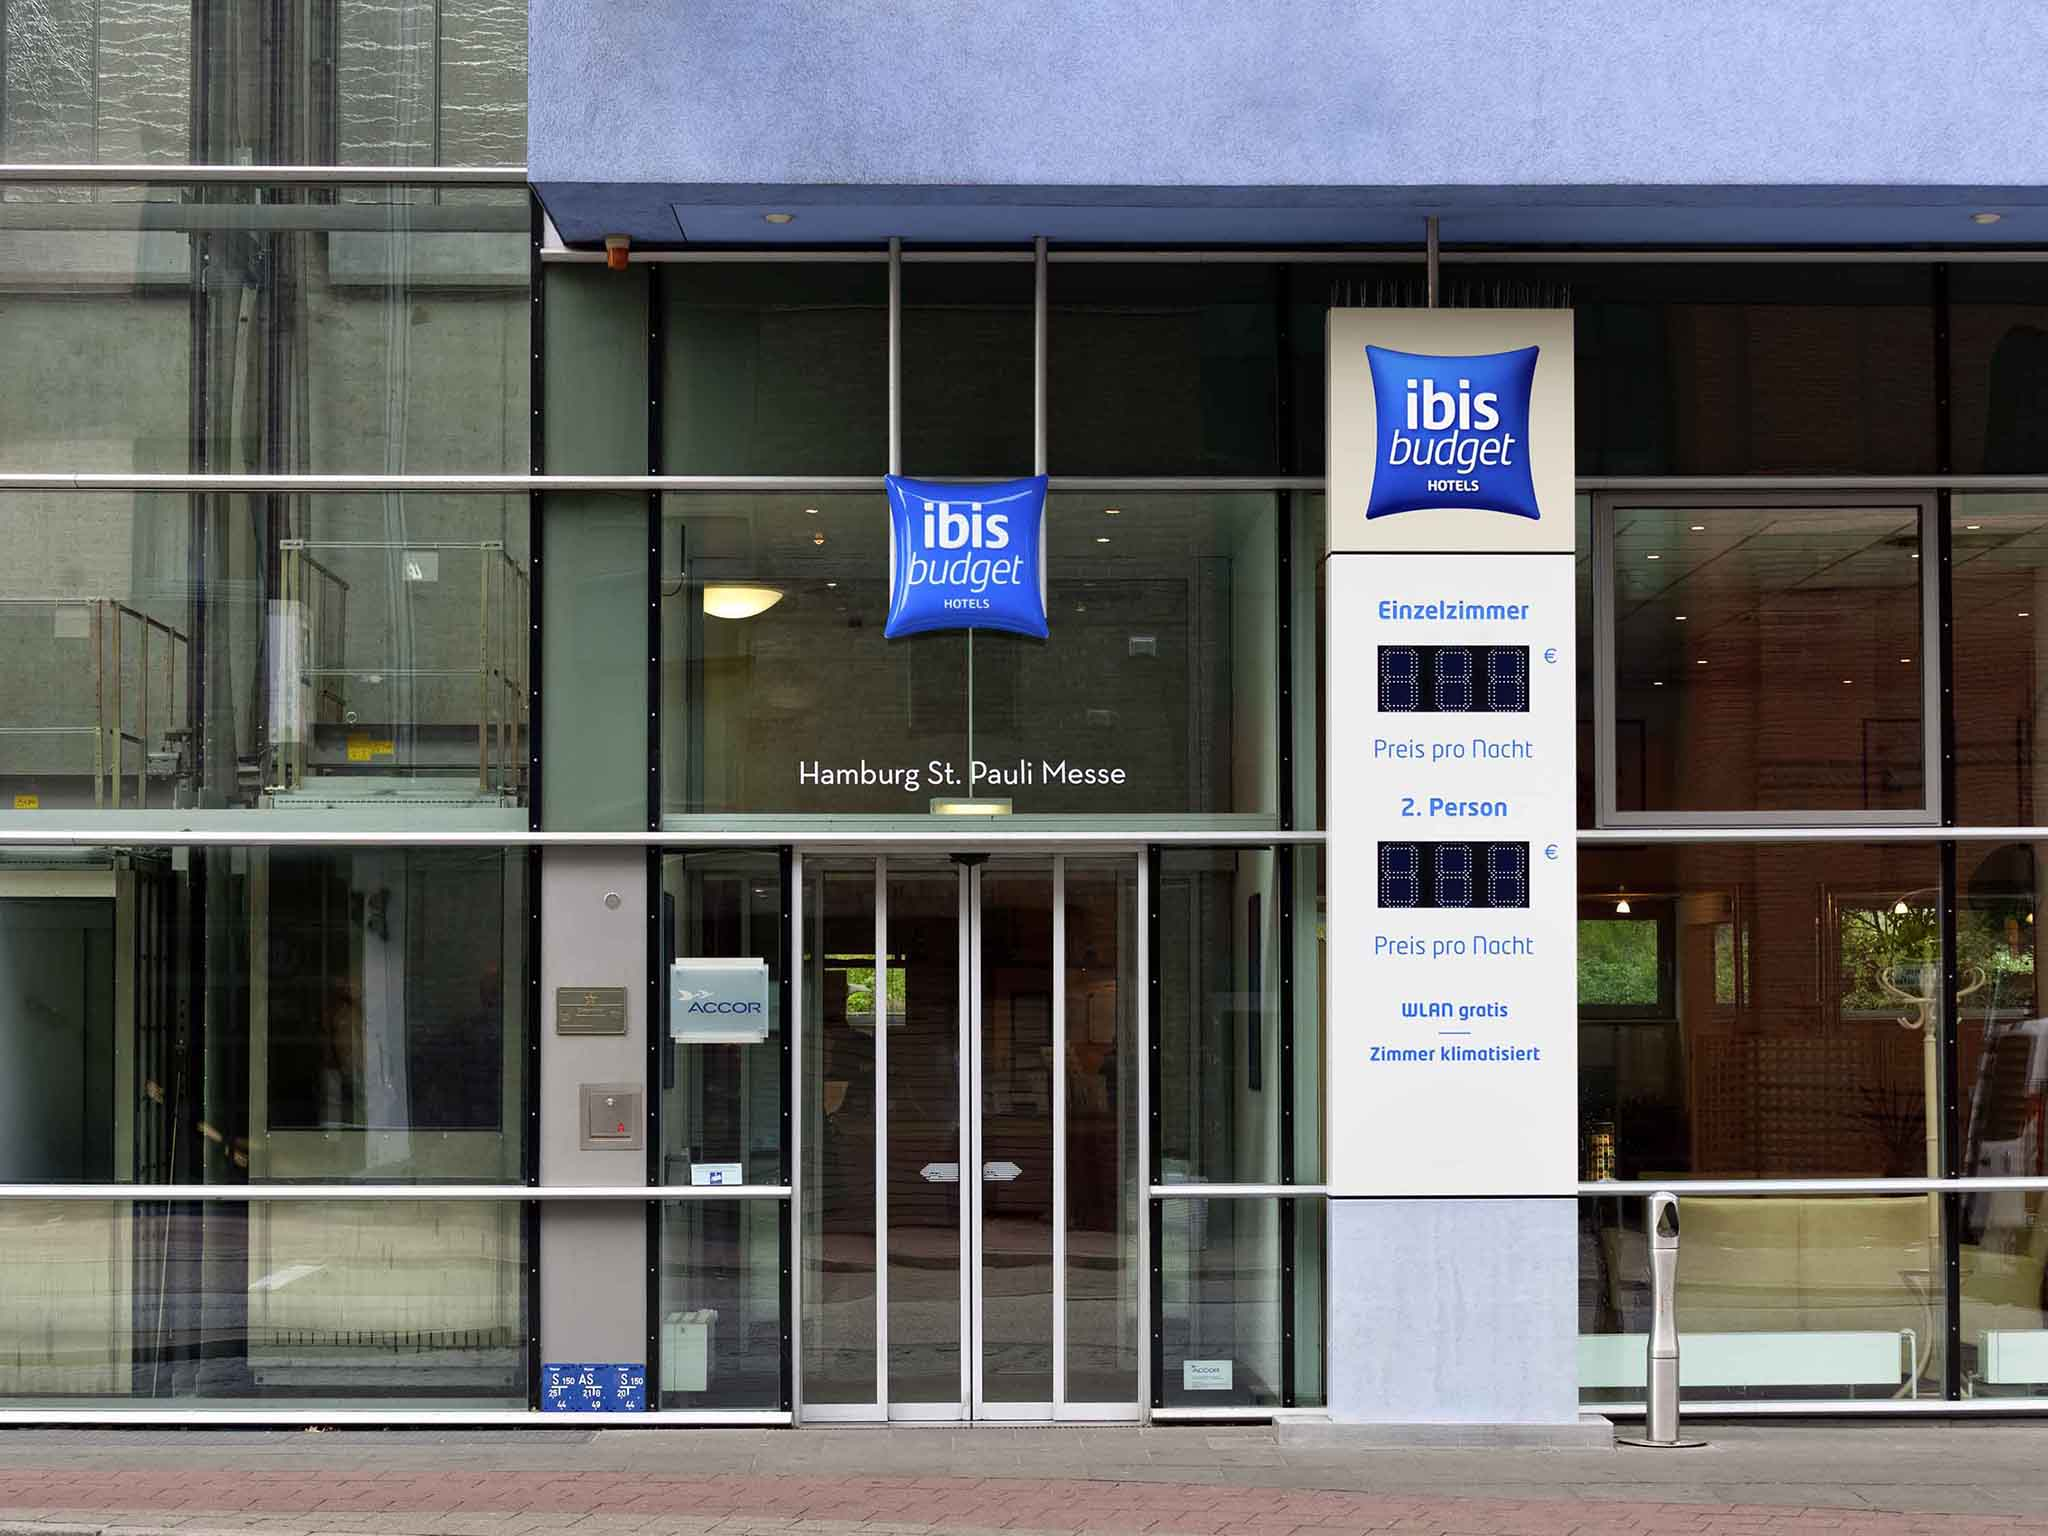 hotel ibis budget hamburg st pauli messe book now wifi. Black Bedroom Furniture Sets. Home Design Ideas